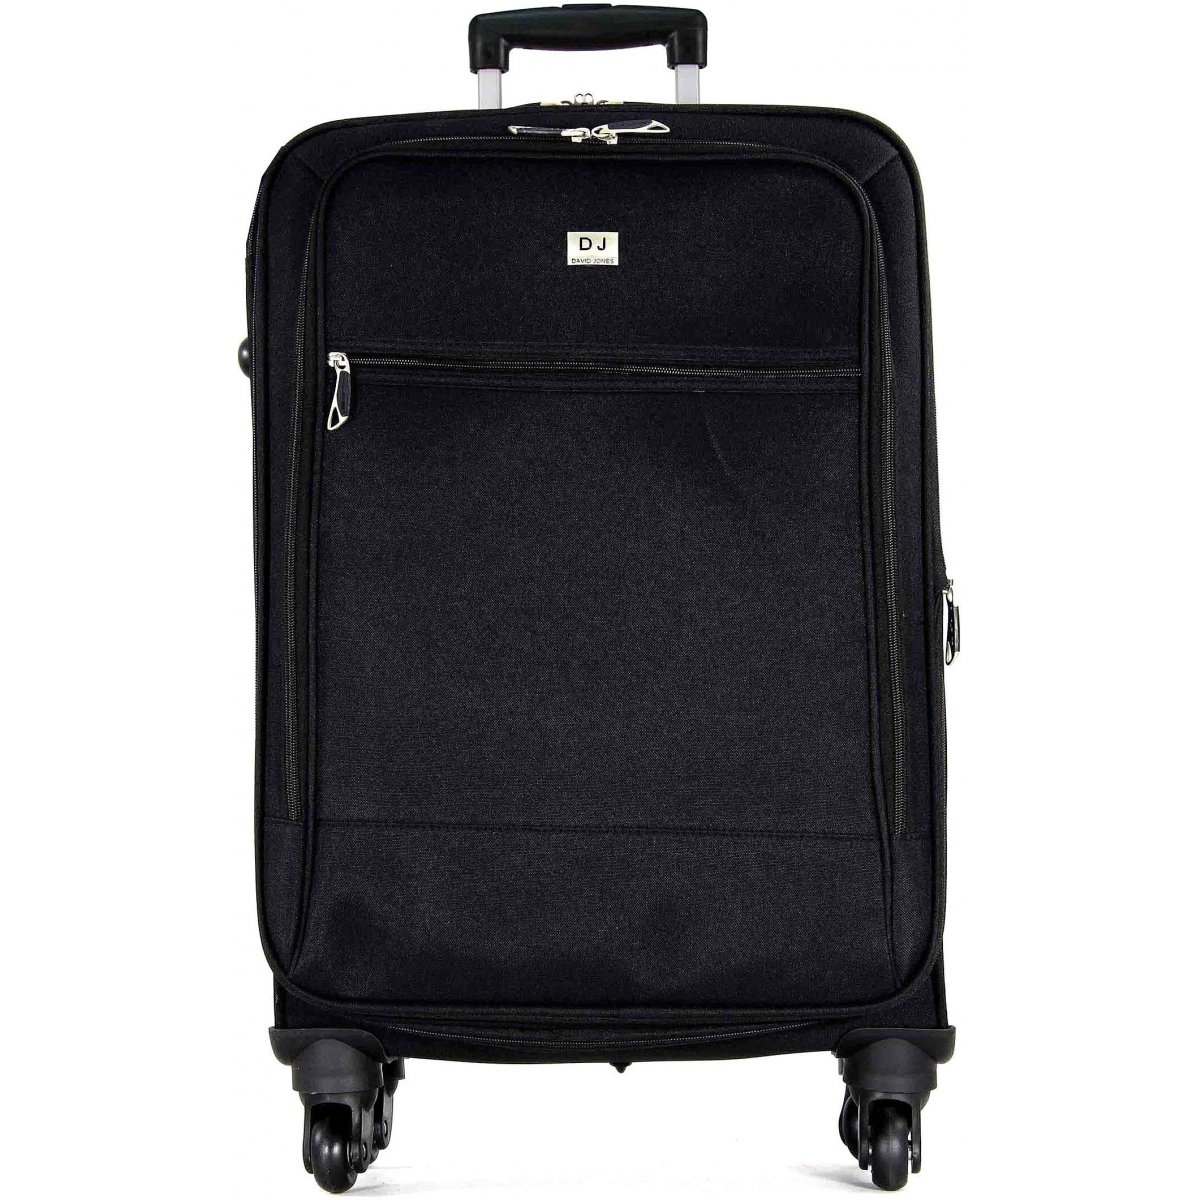 valise souple david jones taille m 66cm r20031m couleur principale noir solde. Black Bedroom Furniture Sets. Home Design Ideas